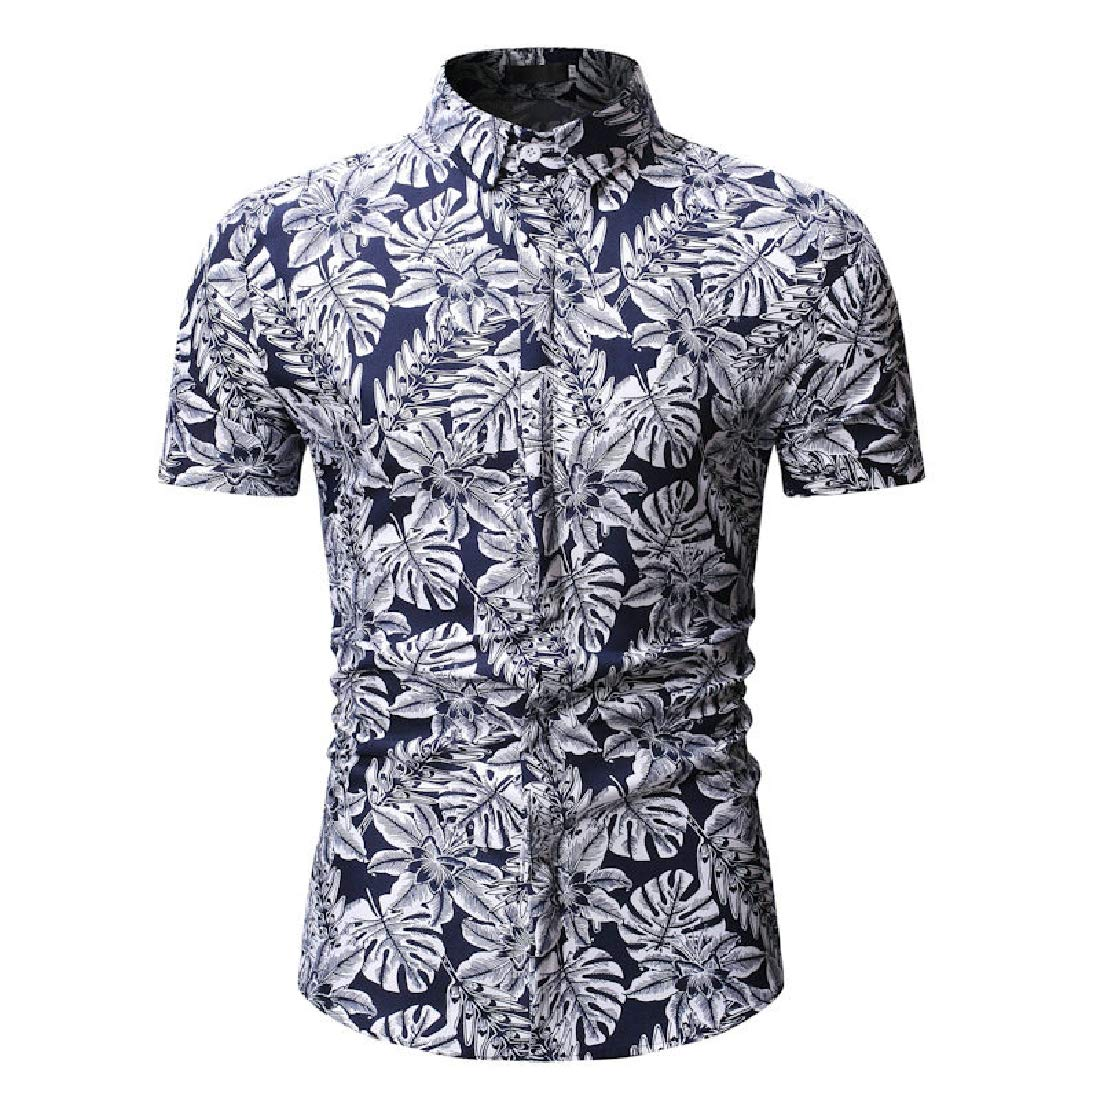 Domple Mens Short Sleeve Casual Printed Button Down Plus Size Shirts